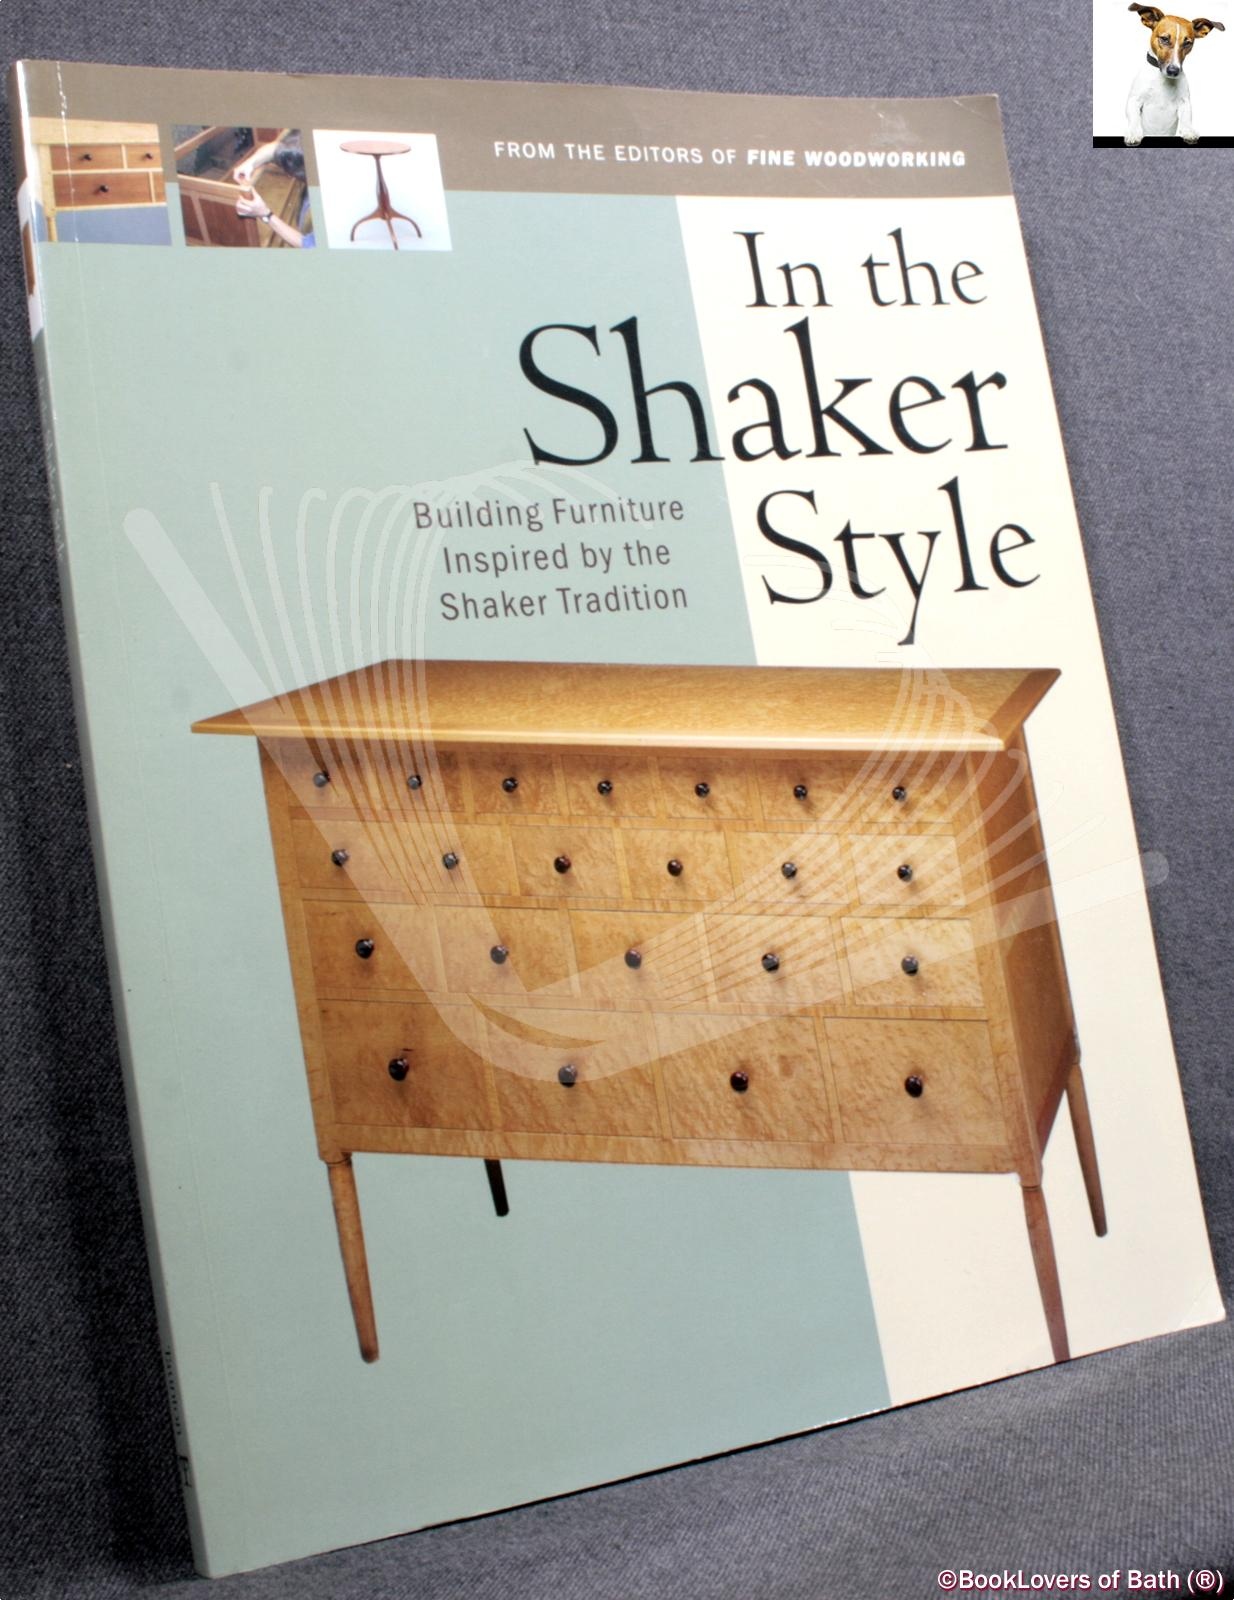 In the Shaker Style: Building Furniture Inspired by the Shaker Tradition - Editors of Fine Woodworking